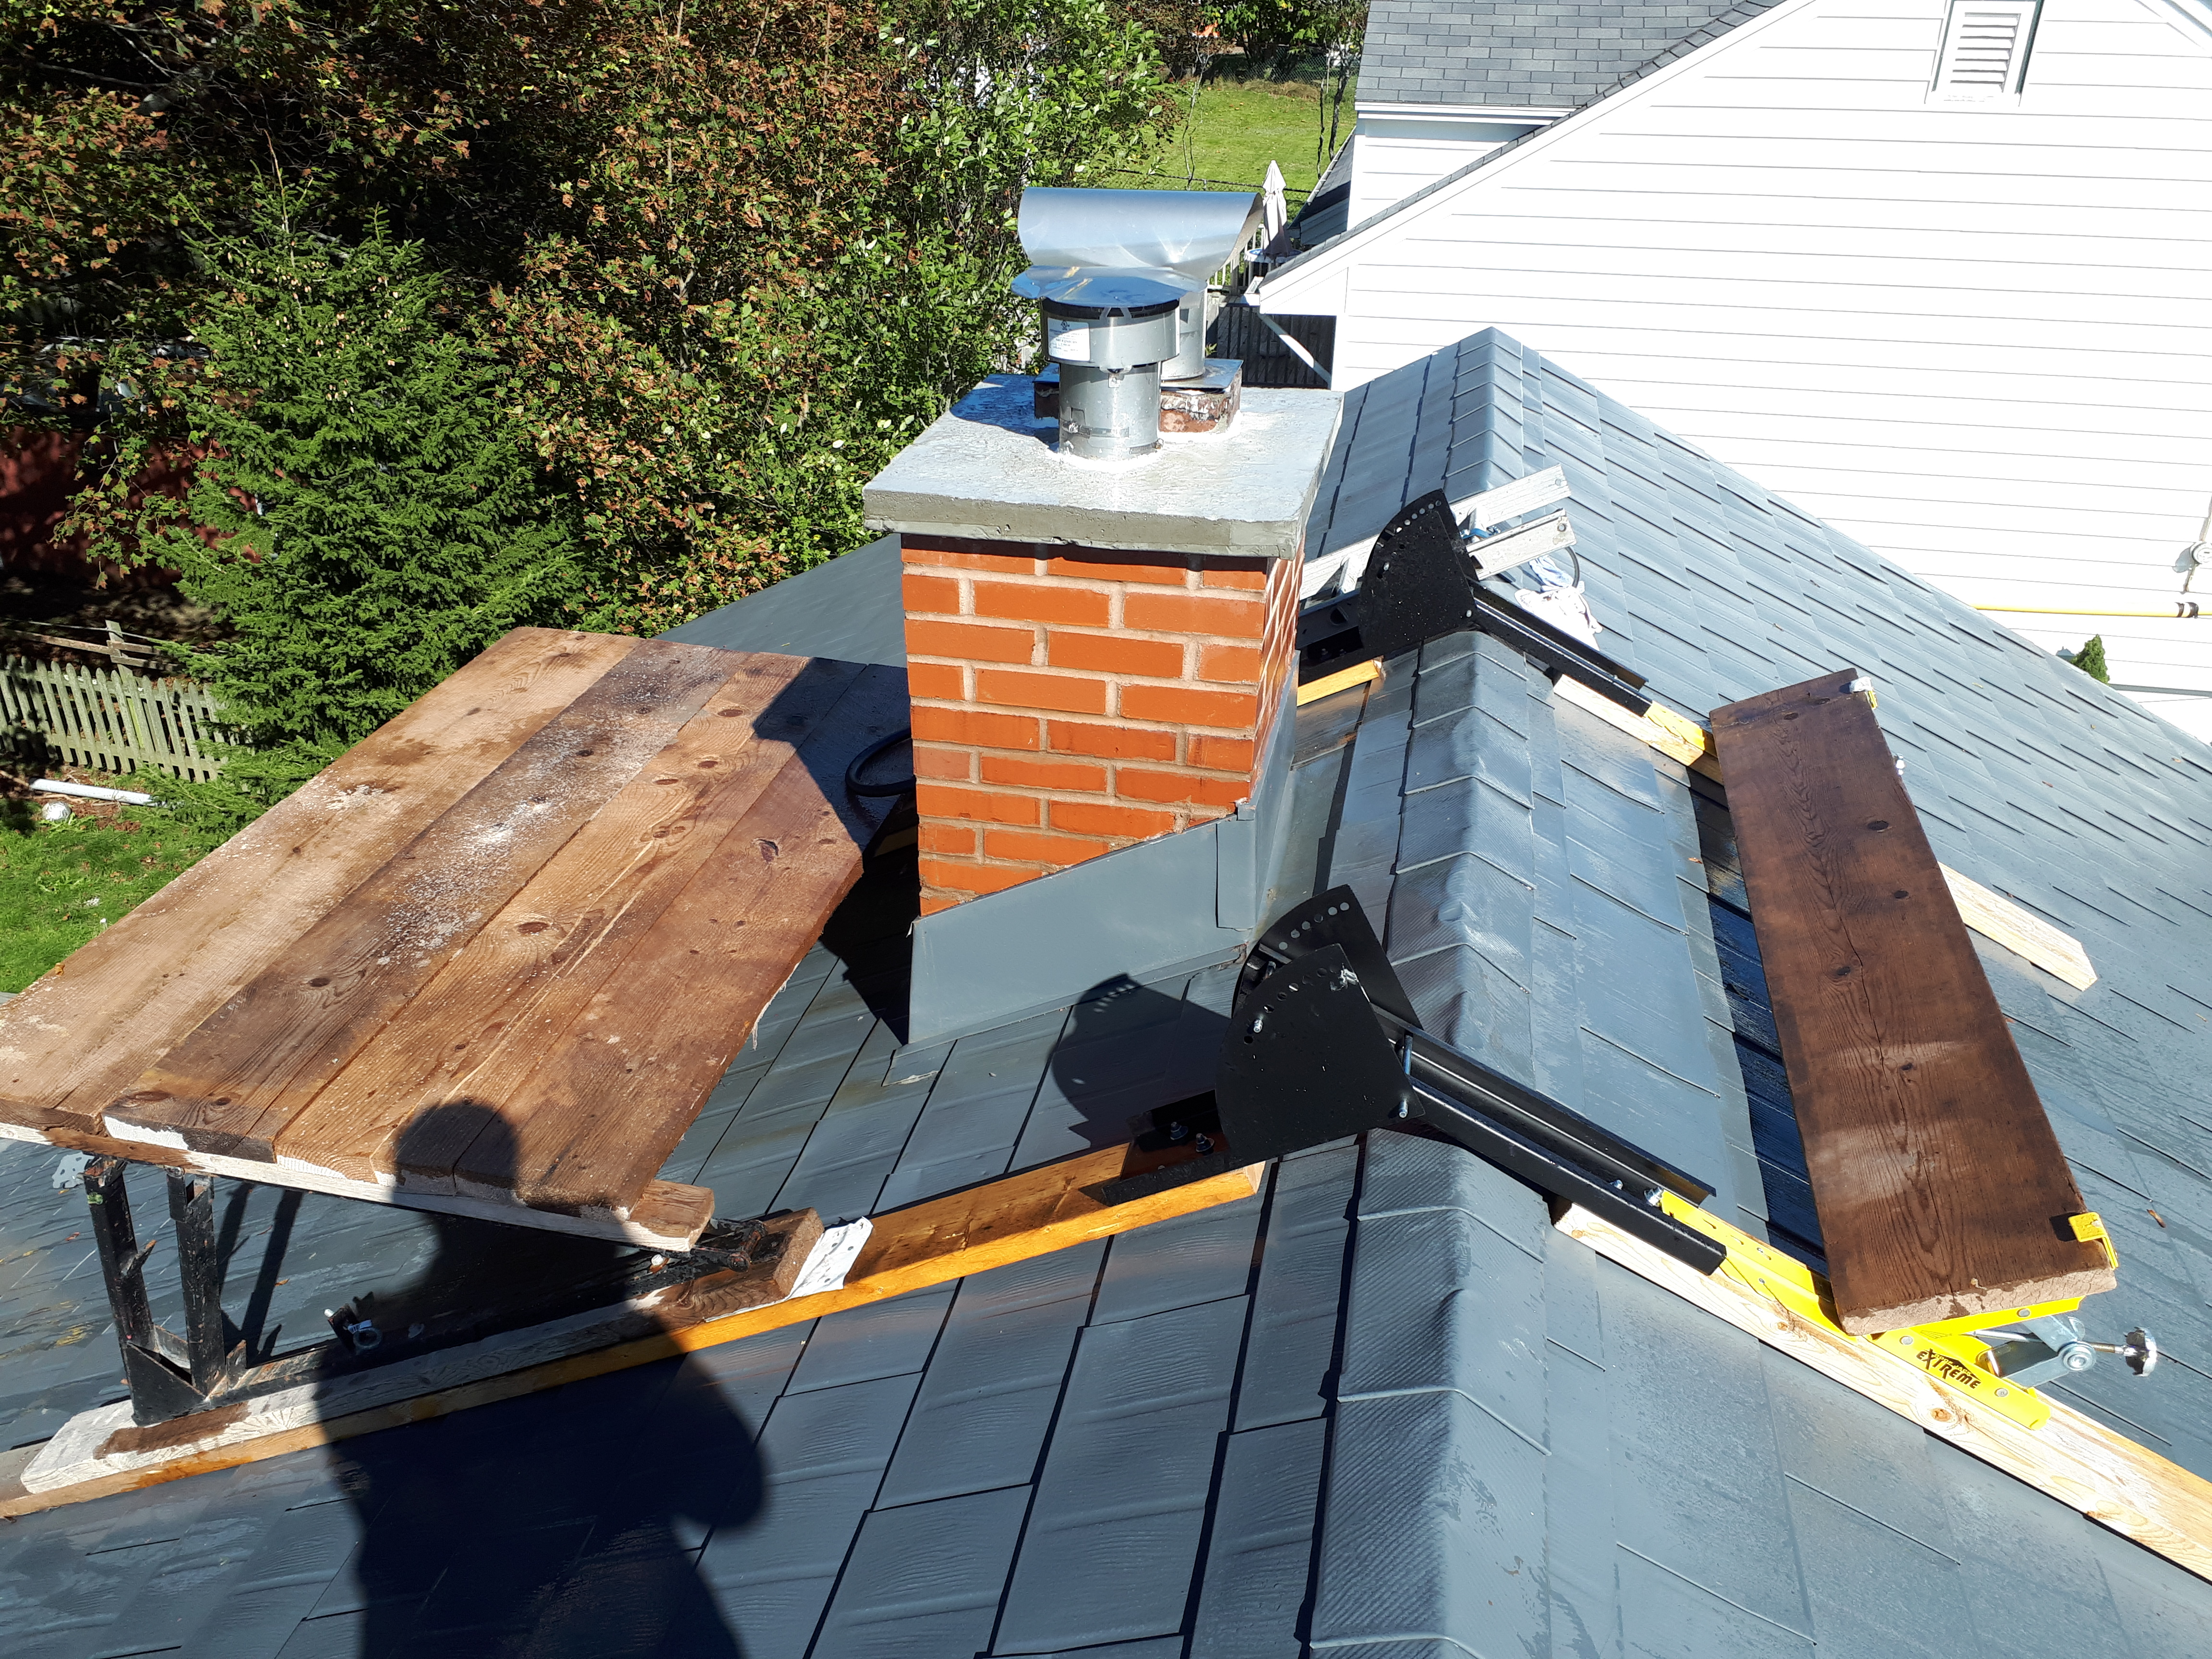 image of masonry repair-masonry chimney repair services completed in Halifax-Dartmouth Regional Municipality,NS by Pro Chimney Services based in Halifax, NS servicing all of the Halifax-Dartmouth Regional Municipality, Bedford, Sackville, Mount Uniacke, Hantsport, Windsor Wolfville, Kentville, Chester Basin, Mahone Bay, Lunenburg, Bridgewater, Liverpool, Fall River, Wellington, Enfield, Elmsdale, Brookfield, Truro, Musquodoboit Harbour & surrounding areas.